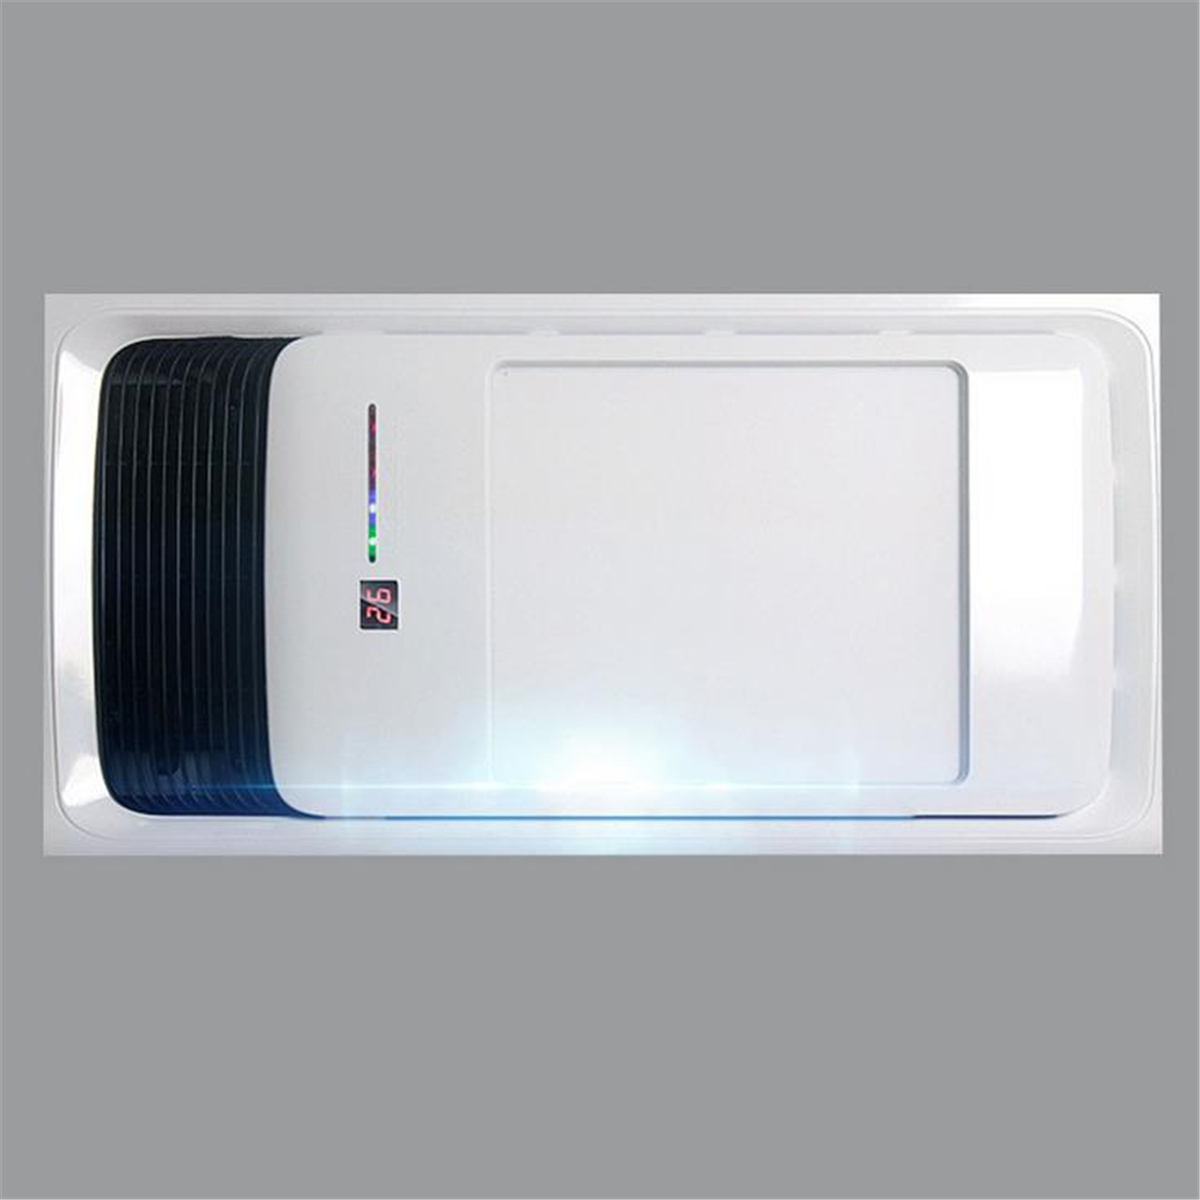 Bathroom Heaters Ceiling Mounted